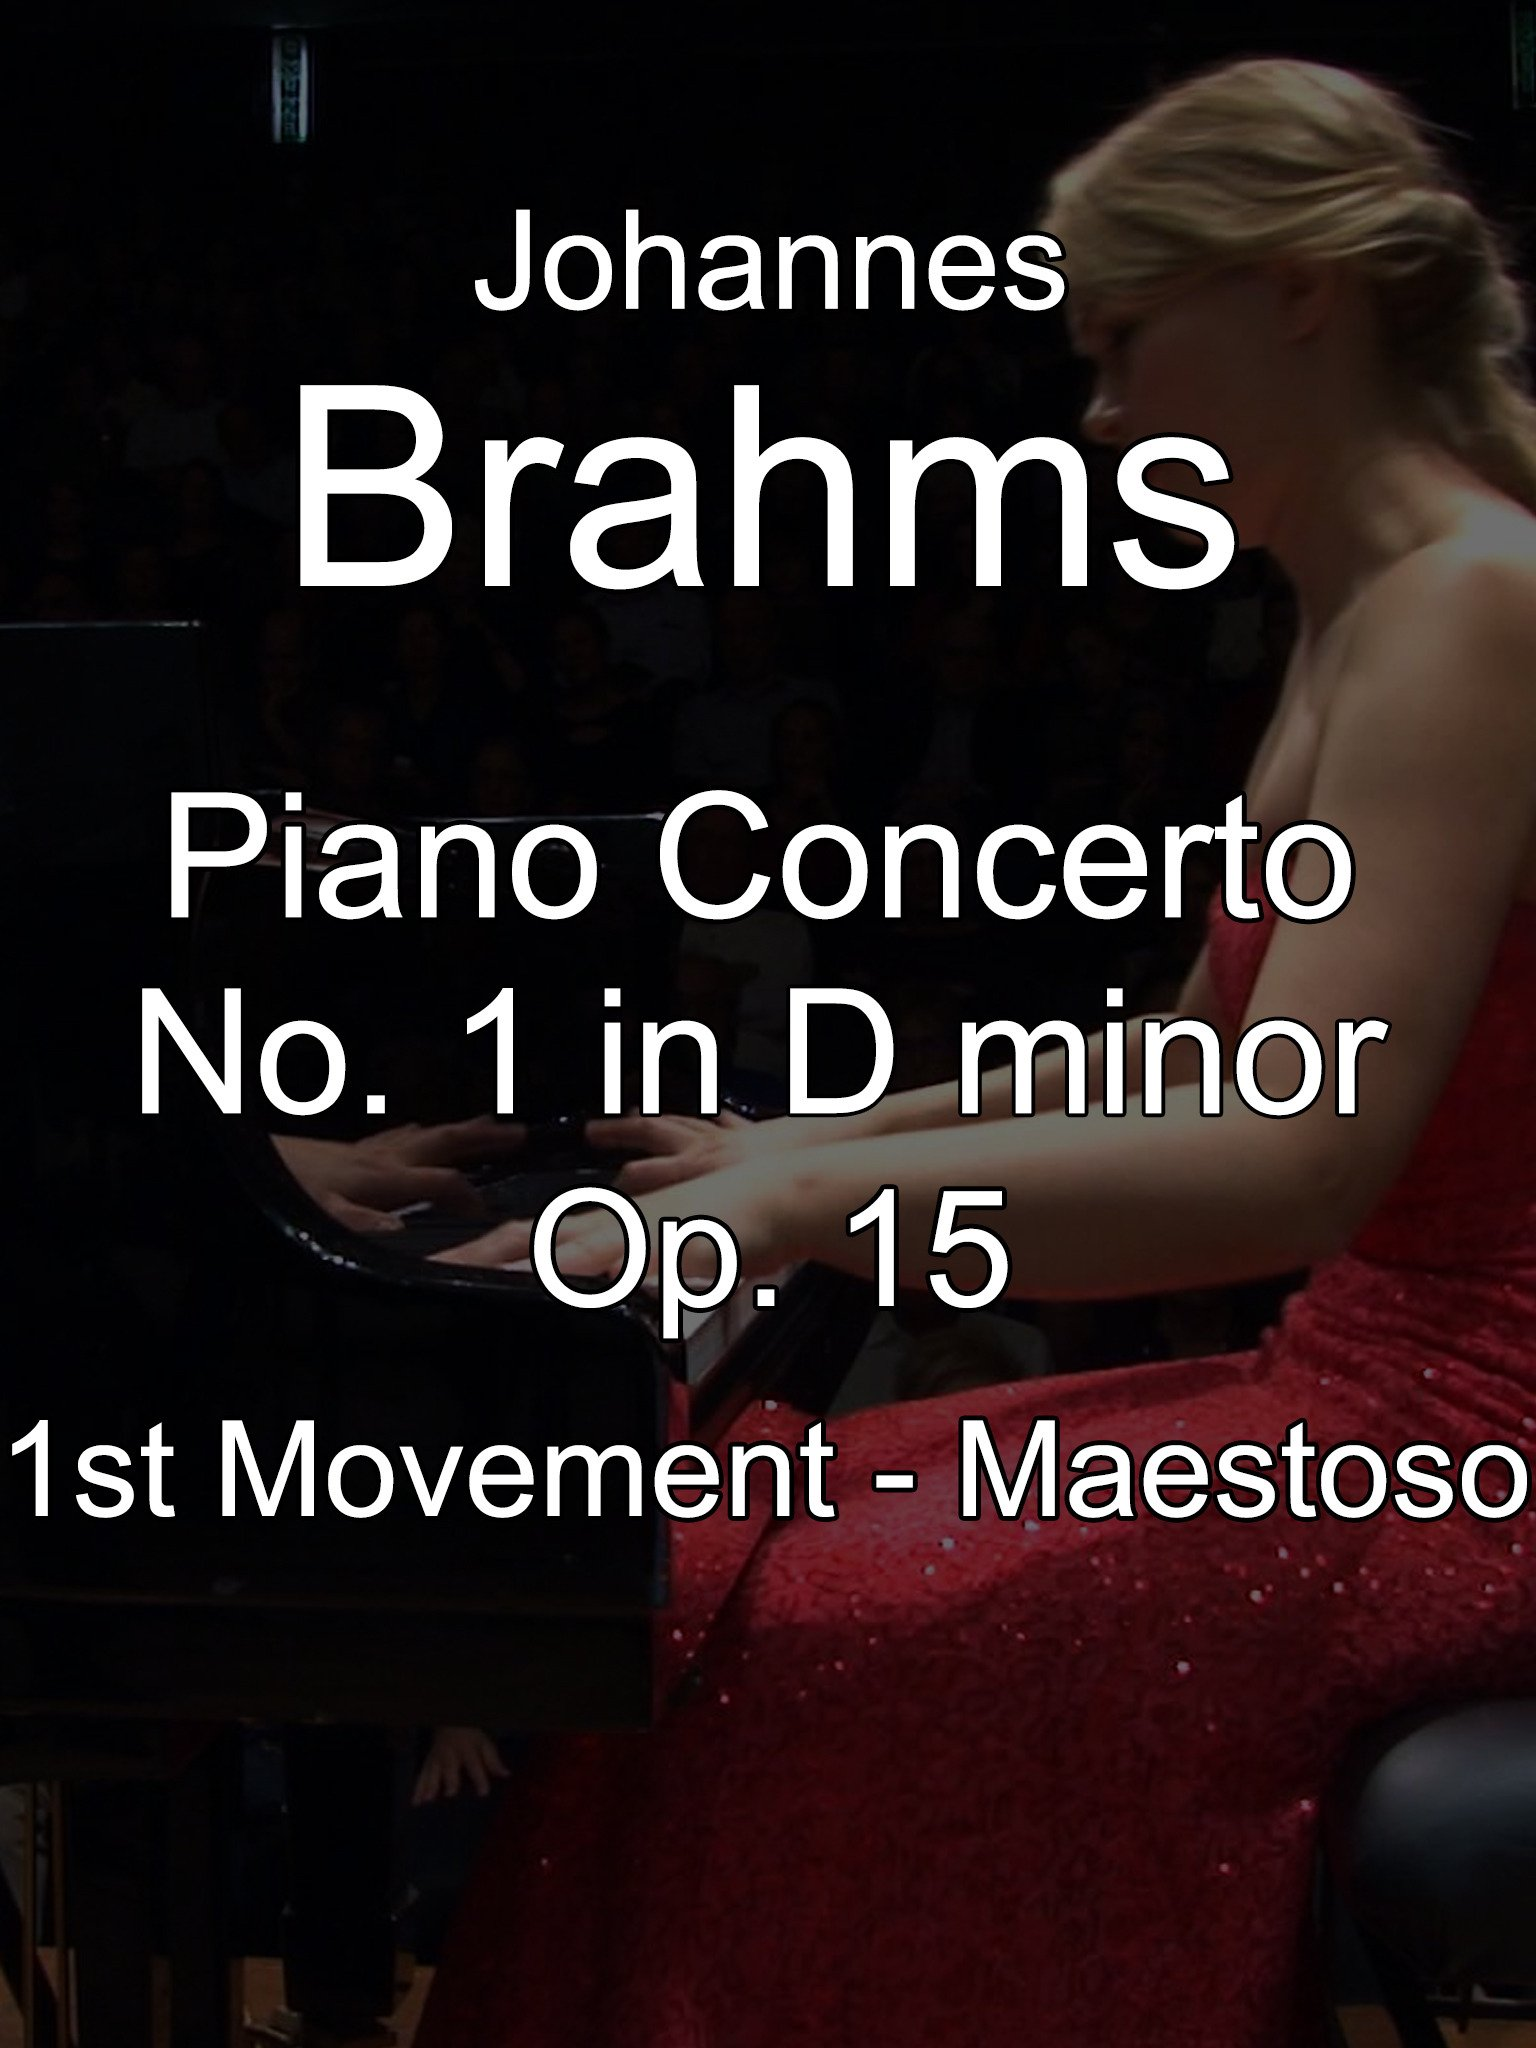 Johannes Brahms Piano Concerto No. 1 in D minor, Op. 15, 1st Movement